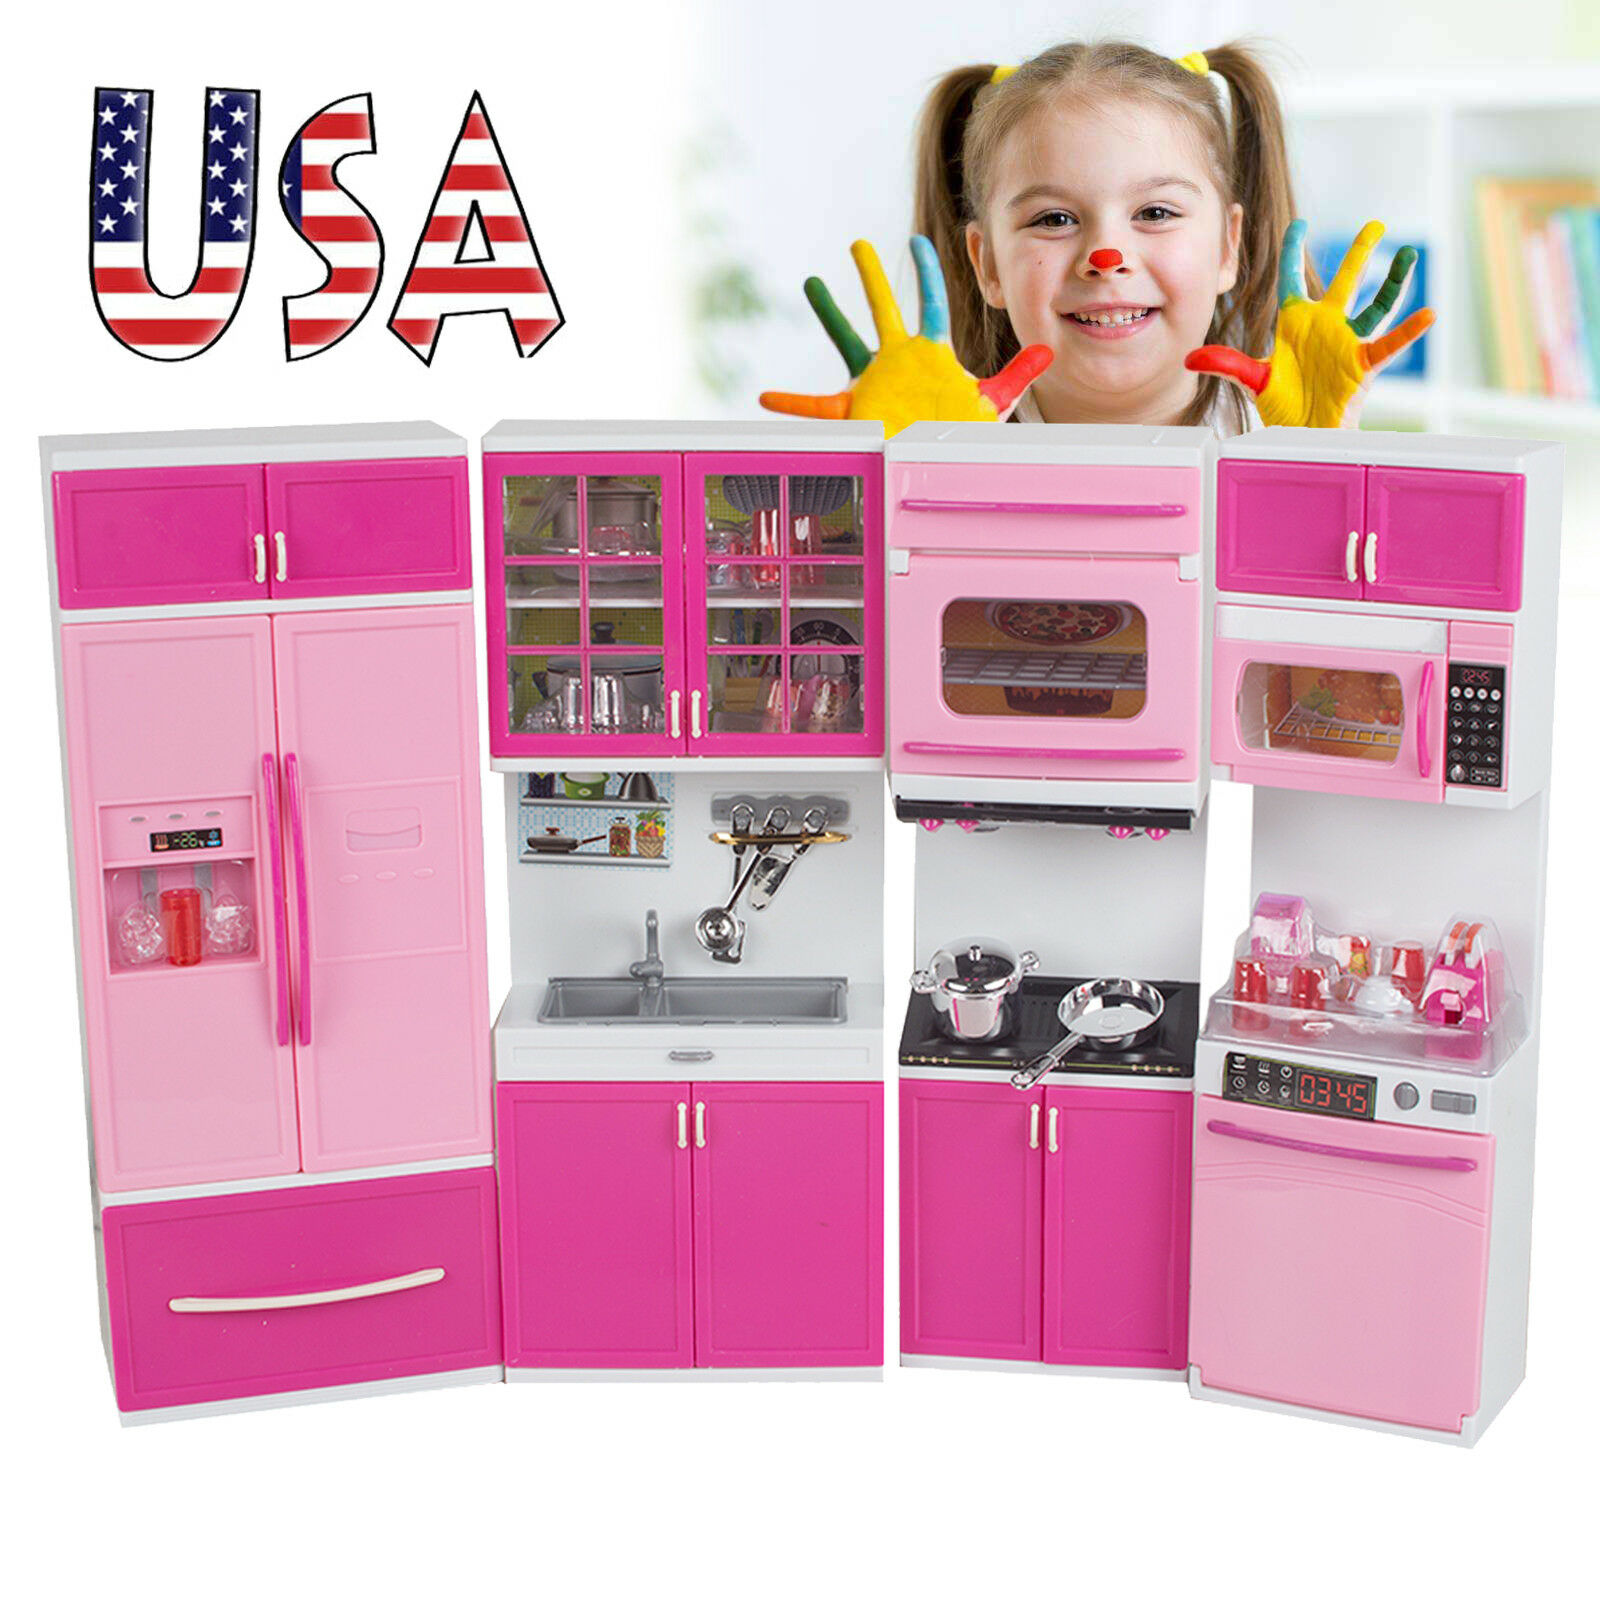 US Kids Large Kitchen Playset Girlsu0026Boys Pretend Cooking Toy Play Set Pink  Gift 1 Of 8 See More